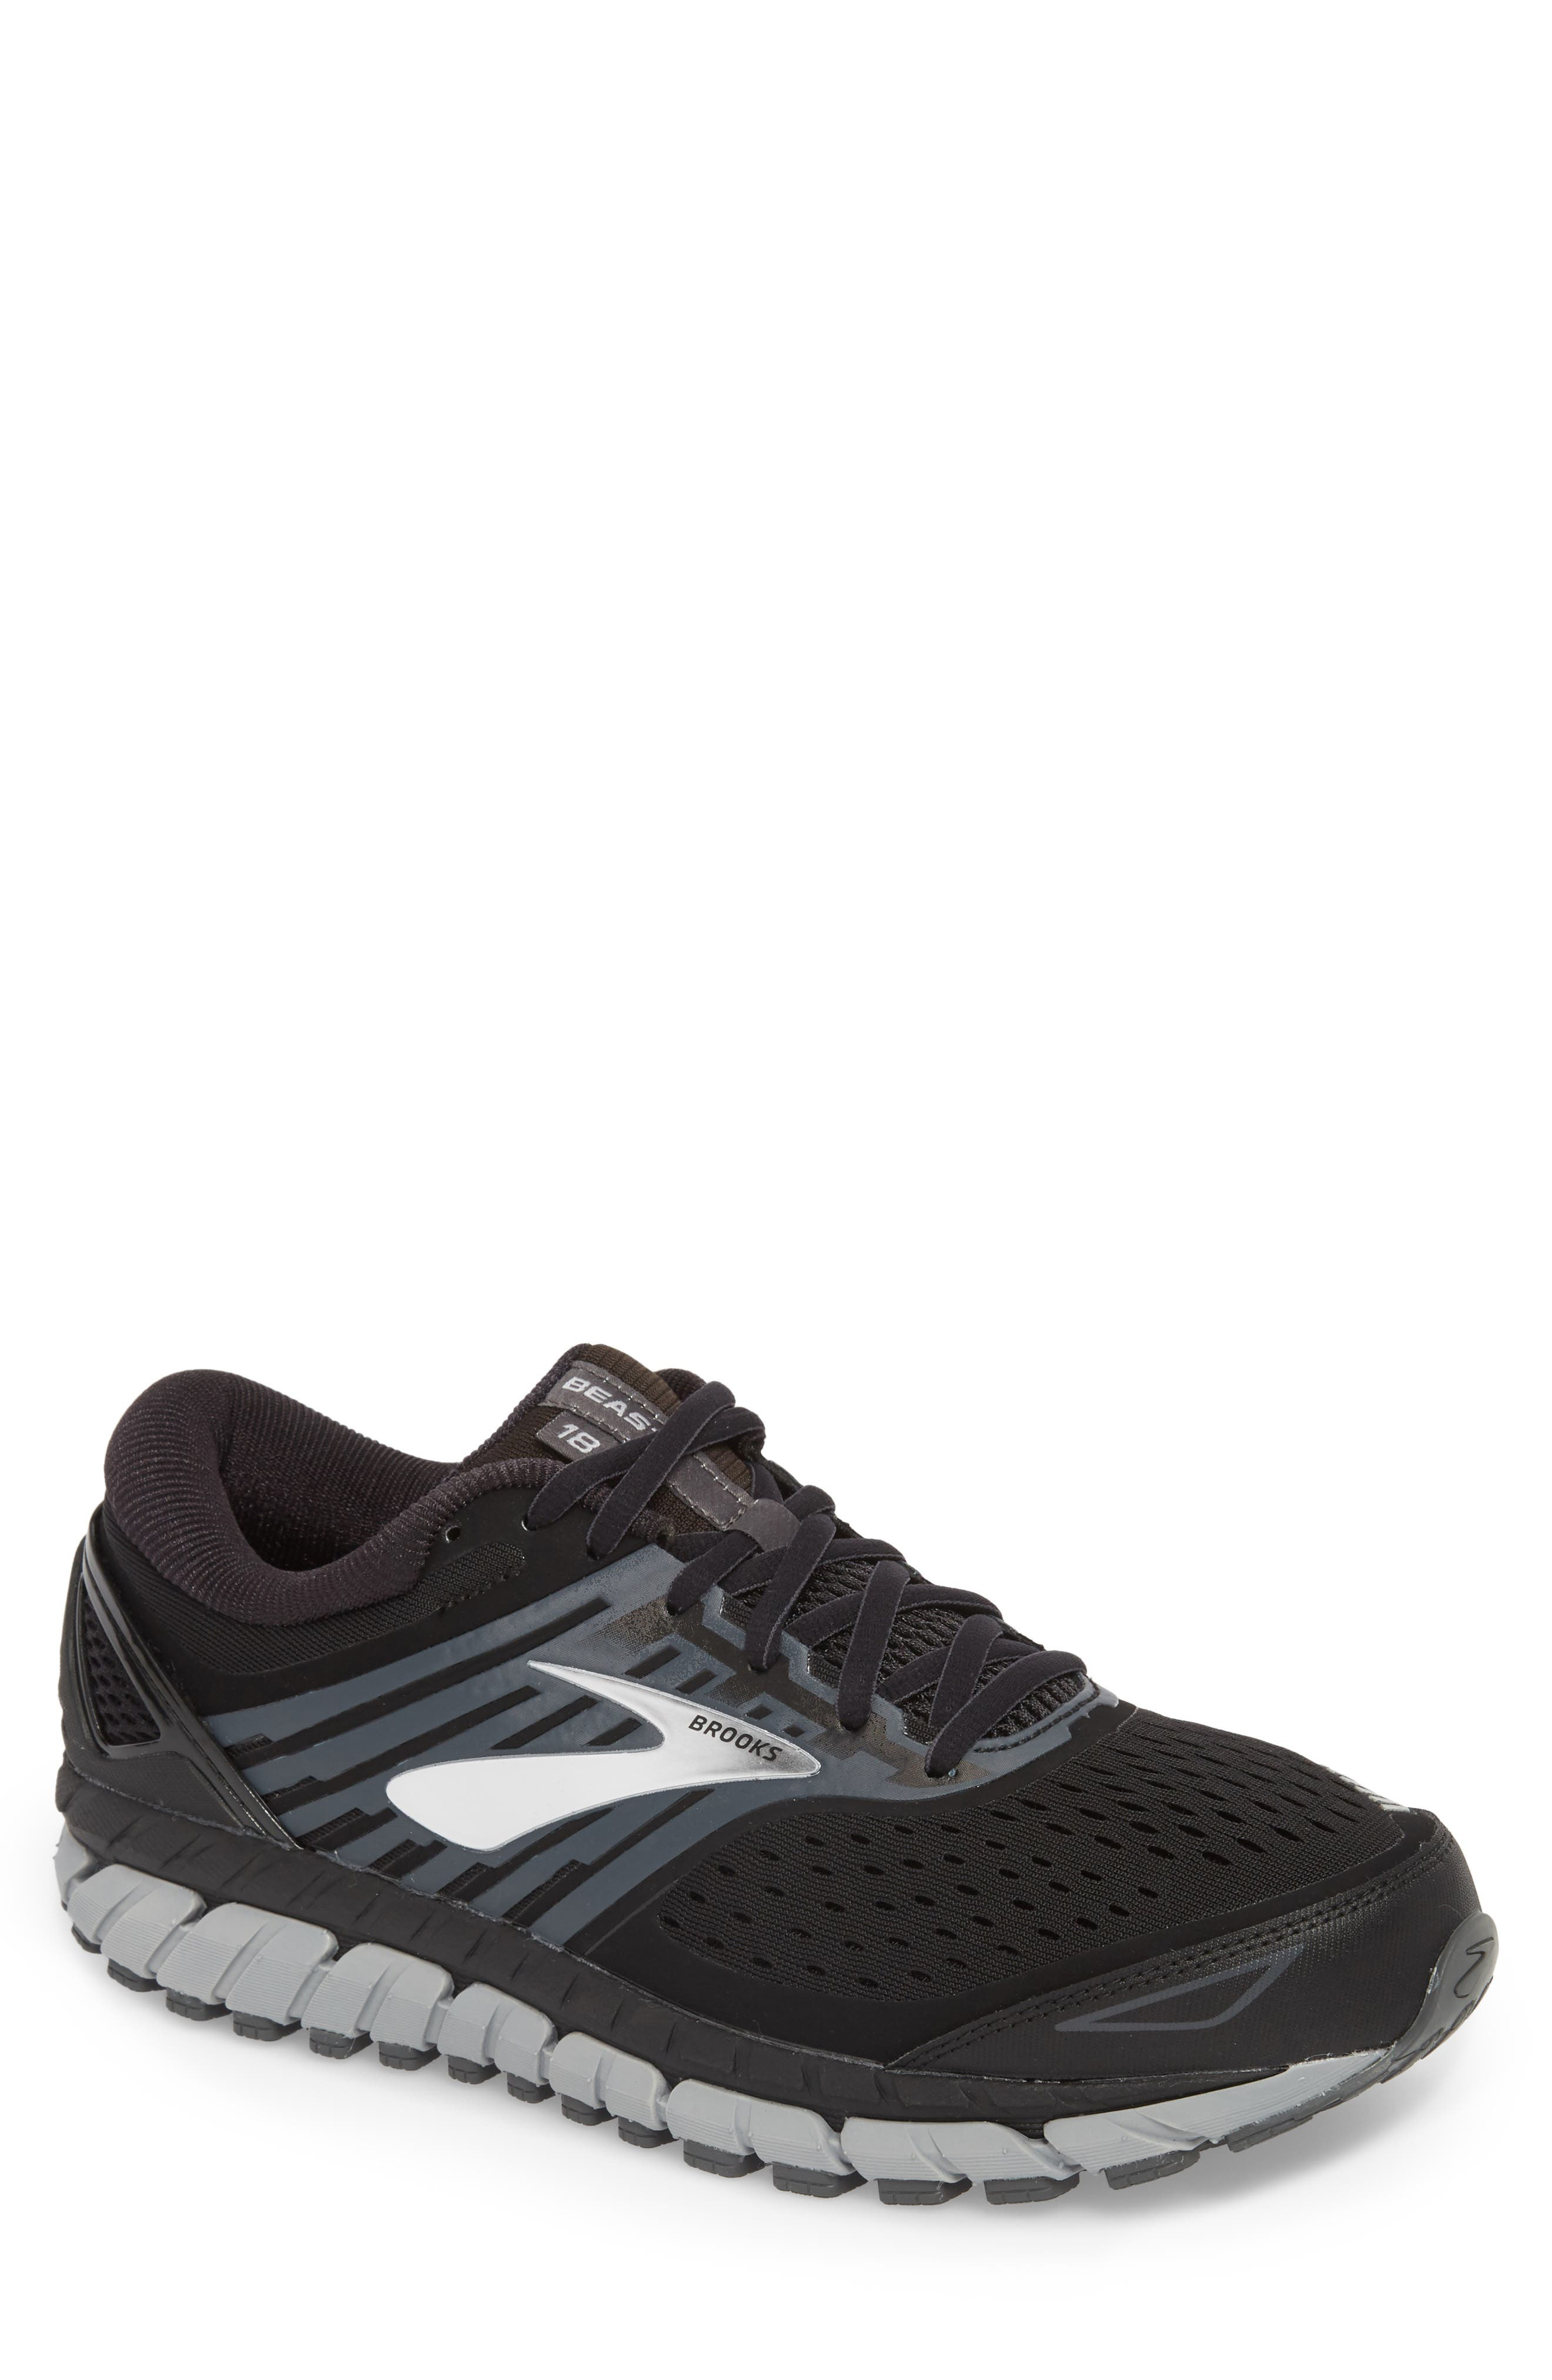 Beast '18 Running Shoe,                         Main,                         color, Black/ Grey/ Silver